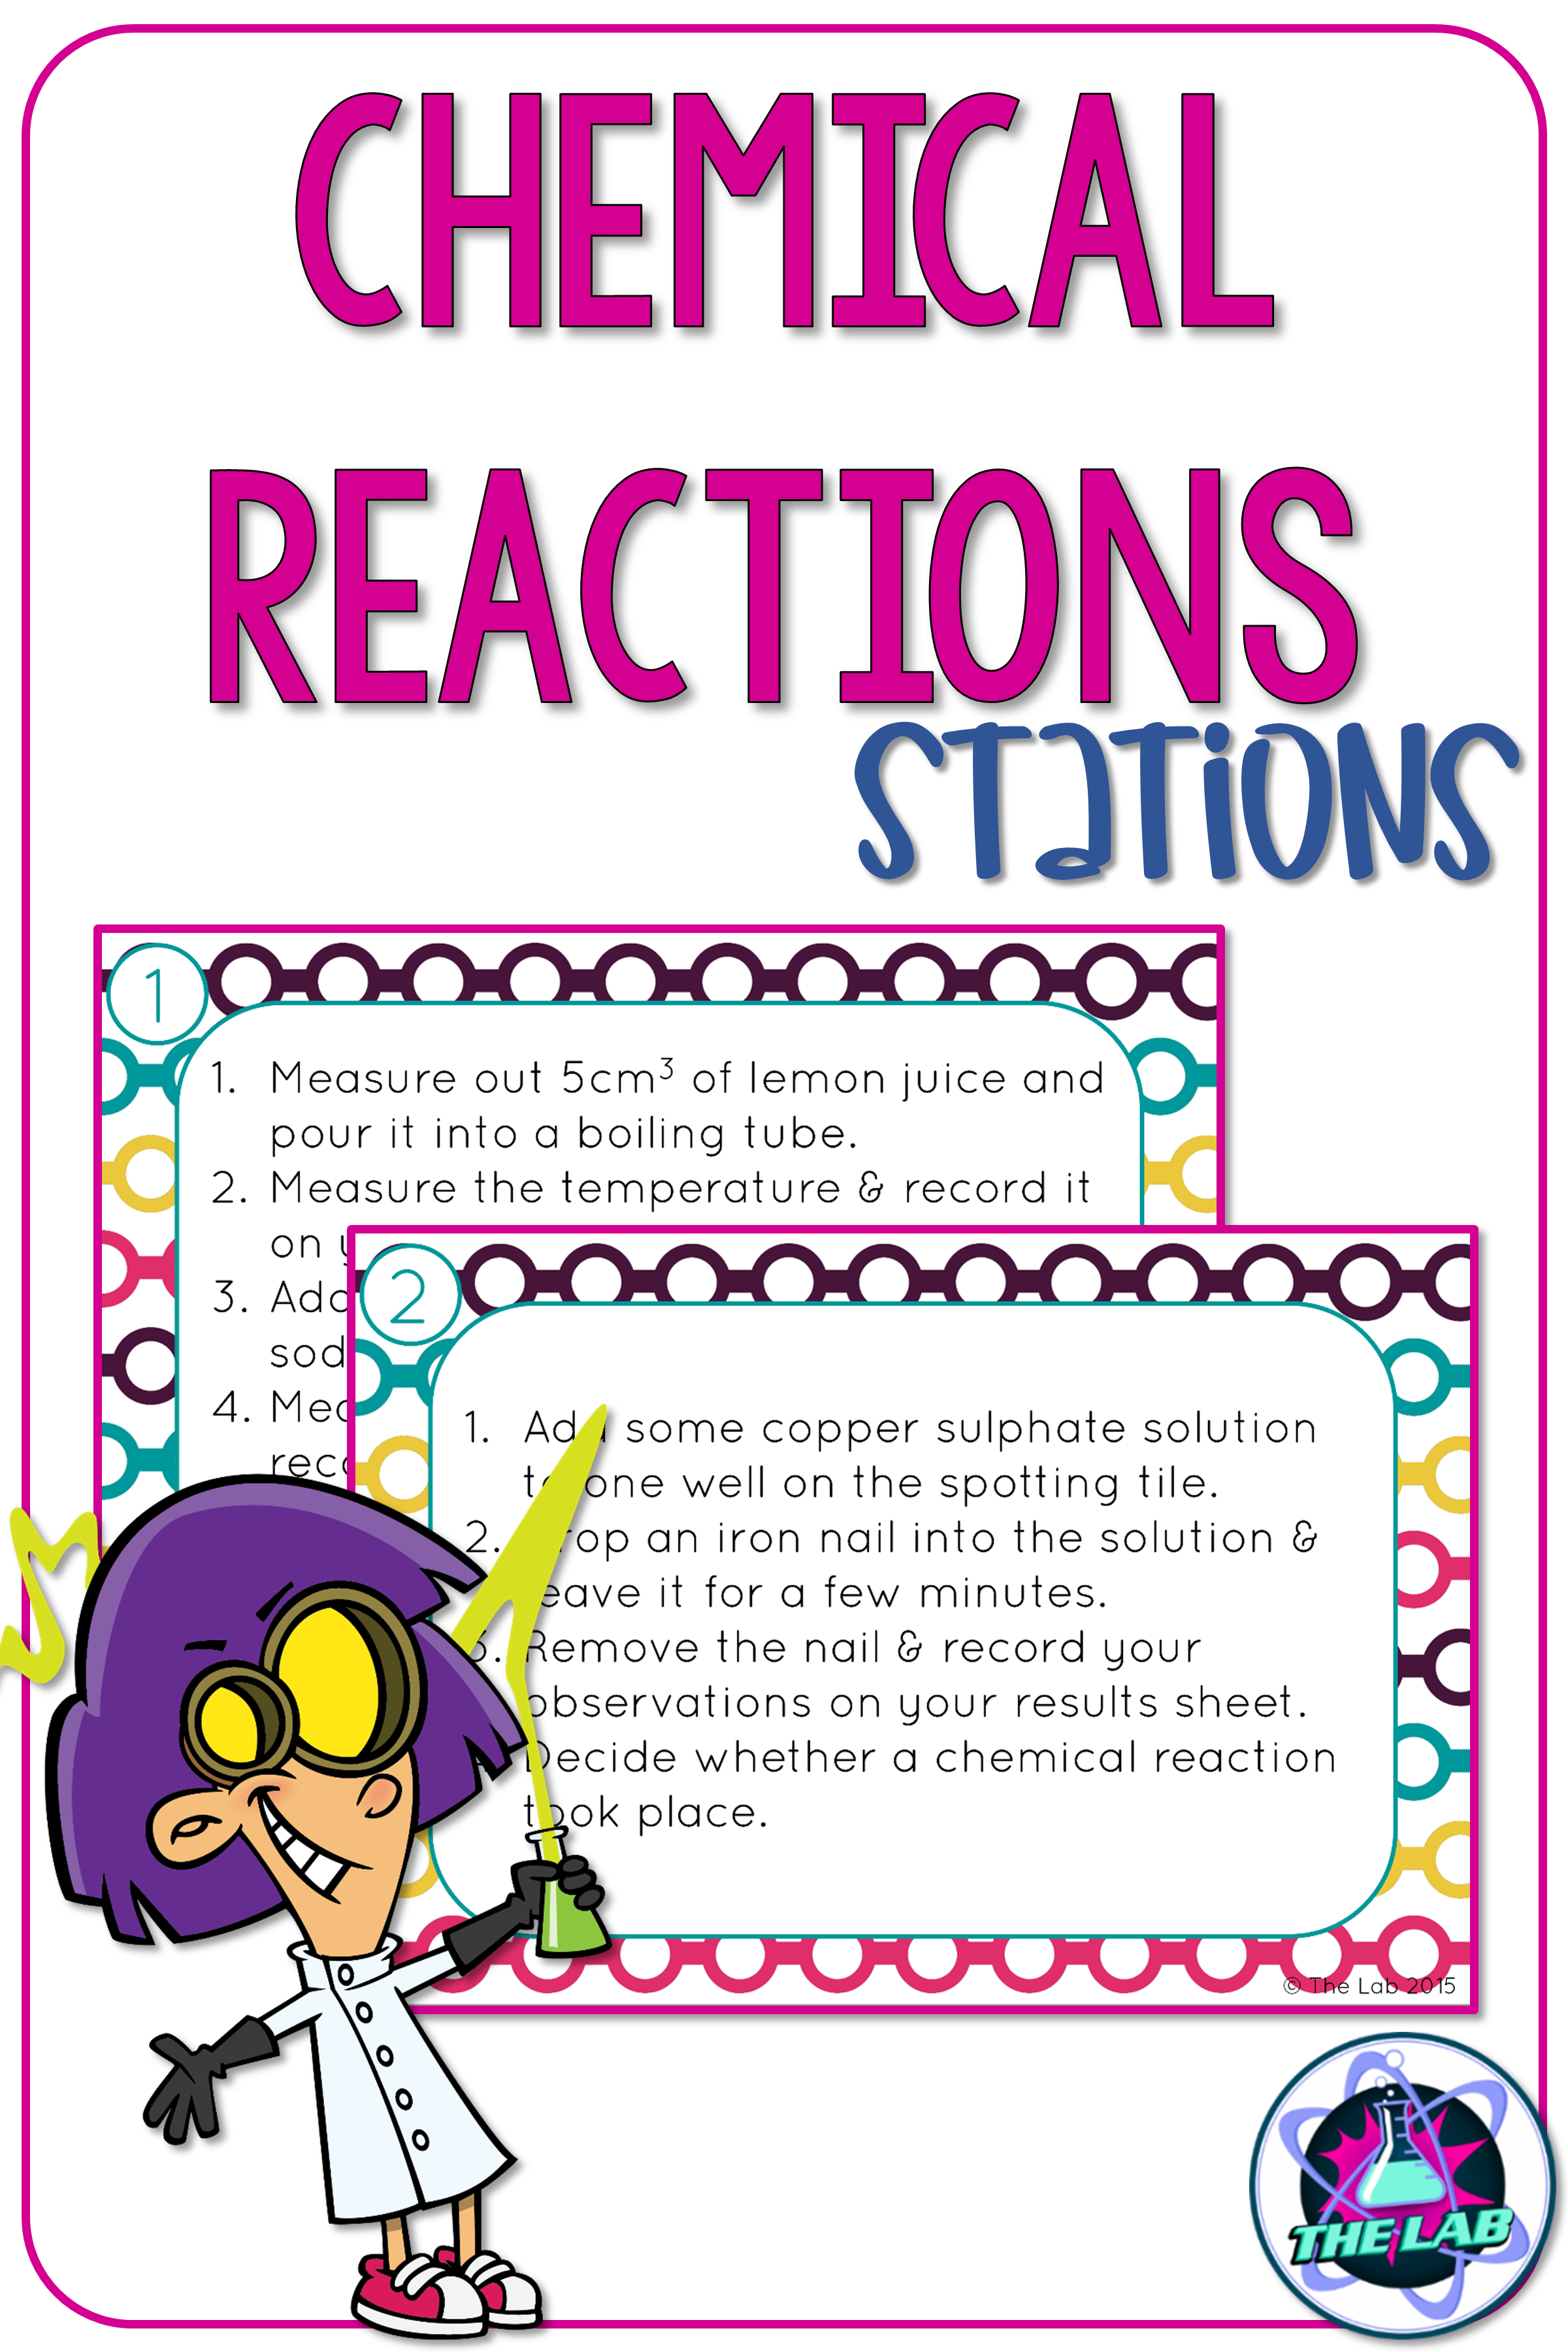 Chemical Reactions Stations With Images